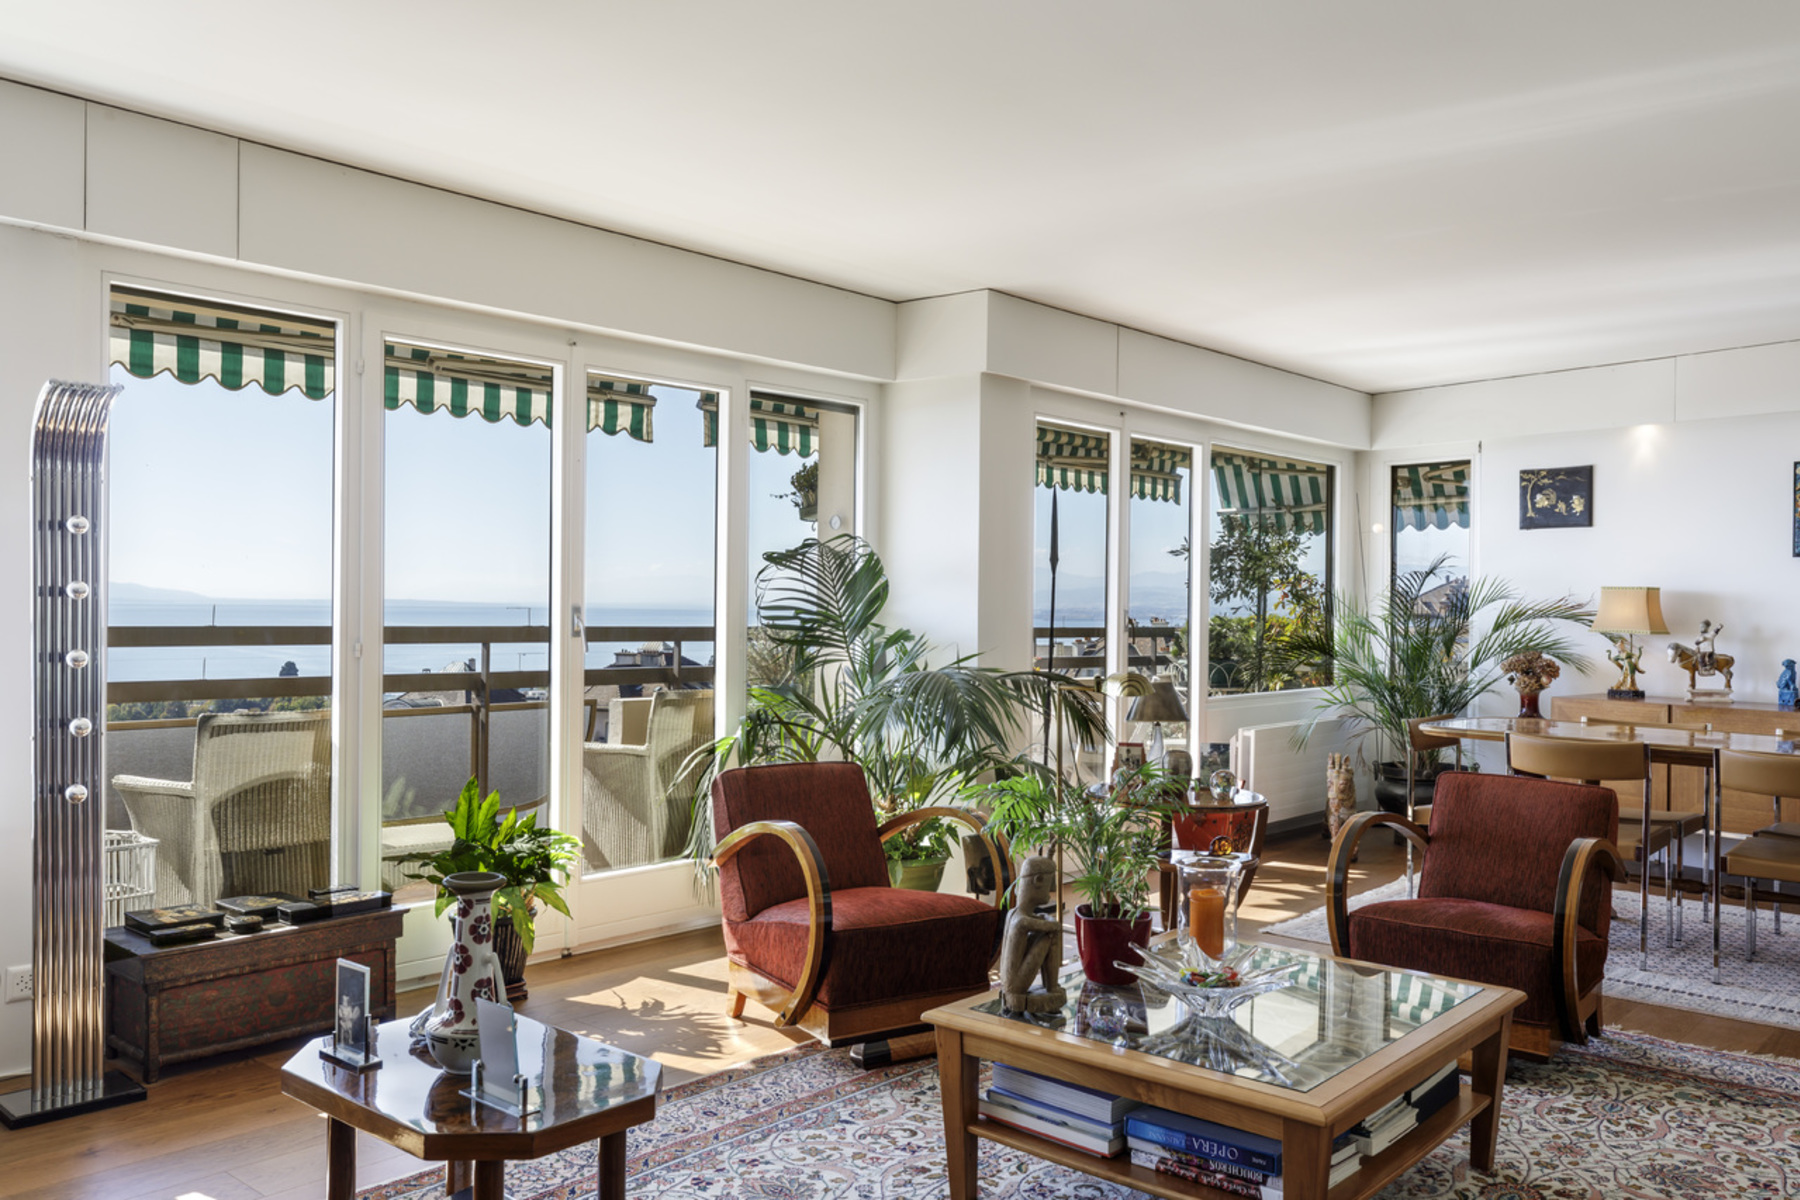 شقة للـ Sale في Rare opportunity to acquire a 7.5 room penthouse apartment! Lausanne, Lausanne, Vaud, 1006 Switzerland